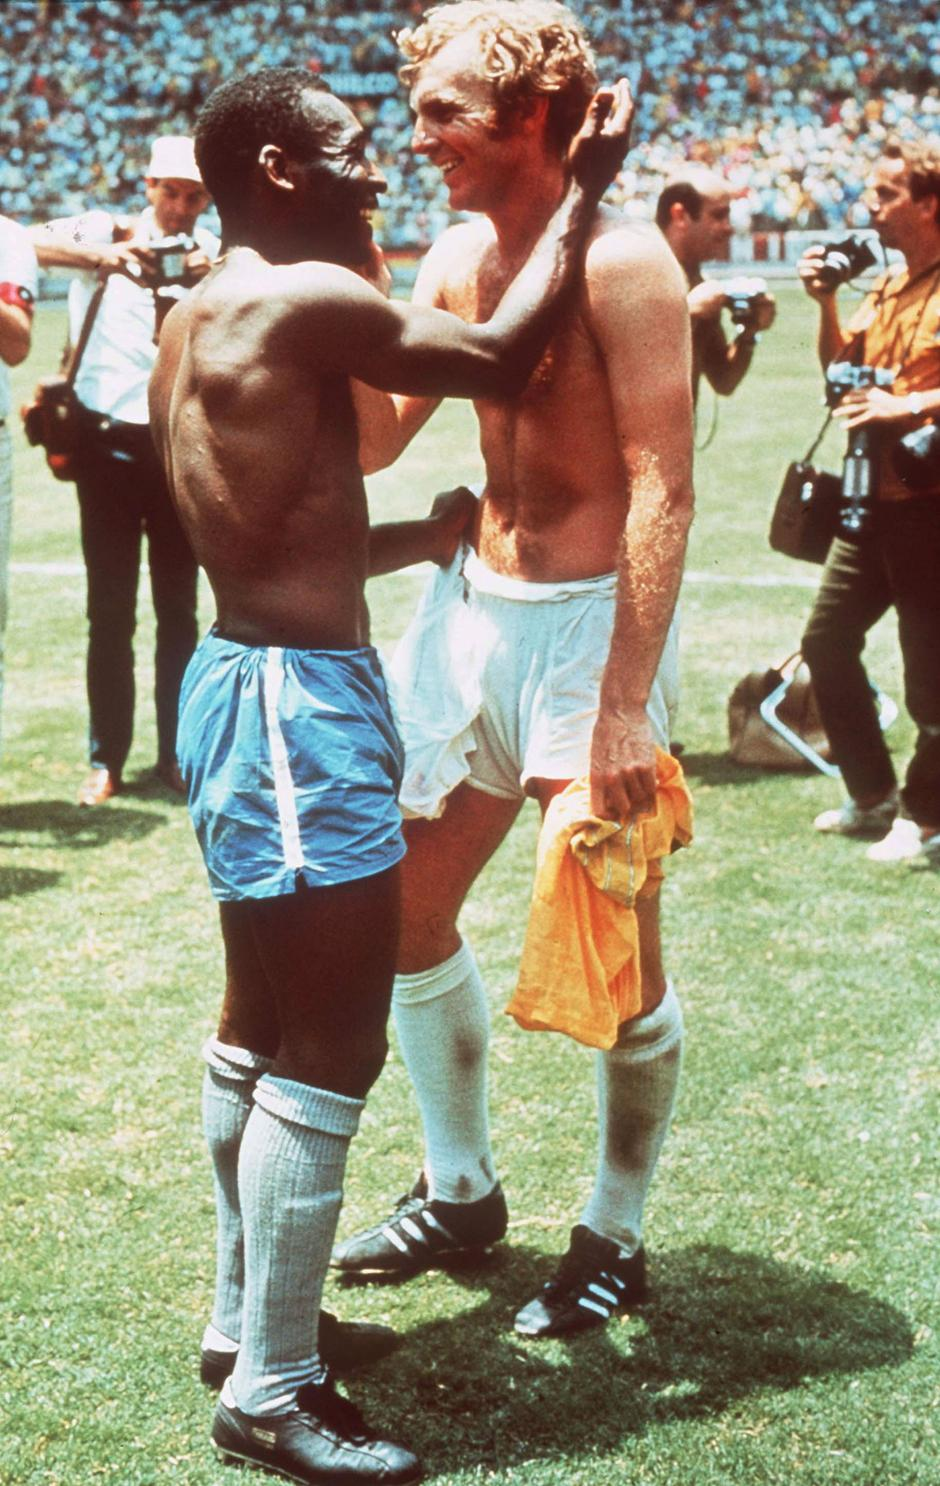 1970 World Cup